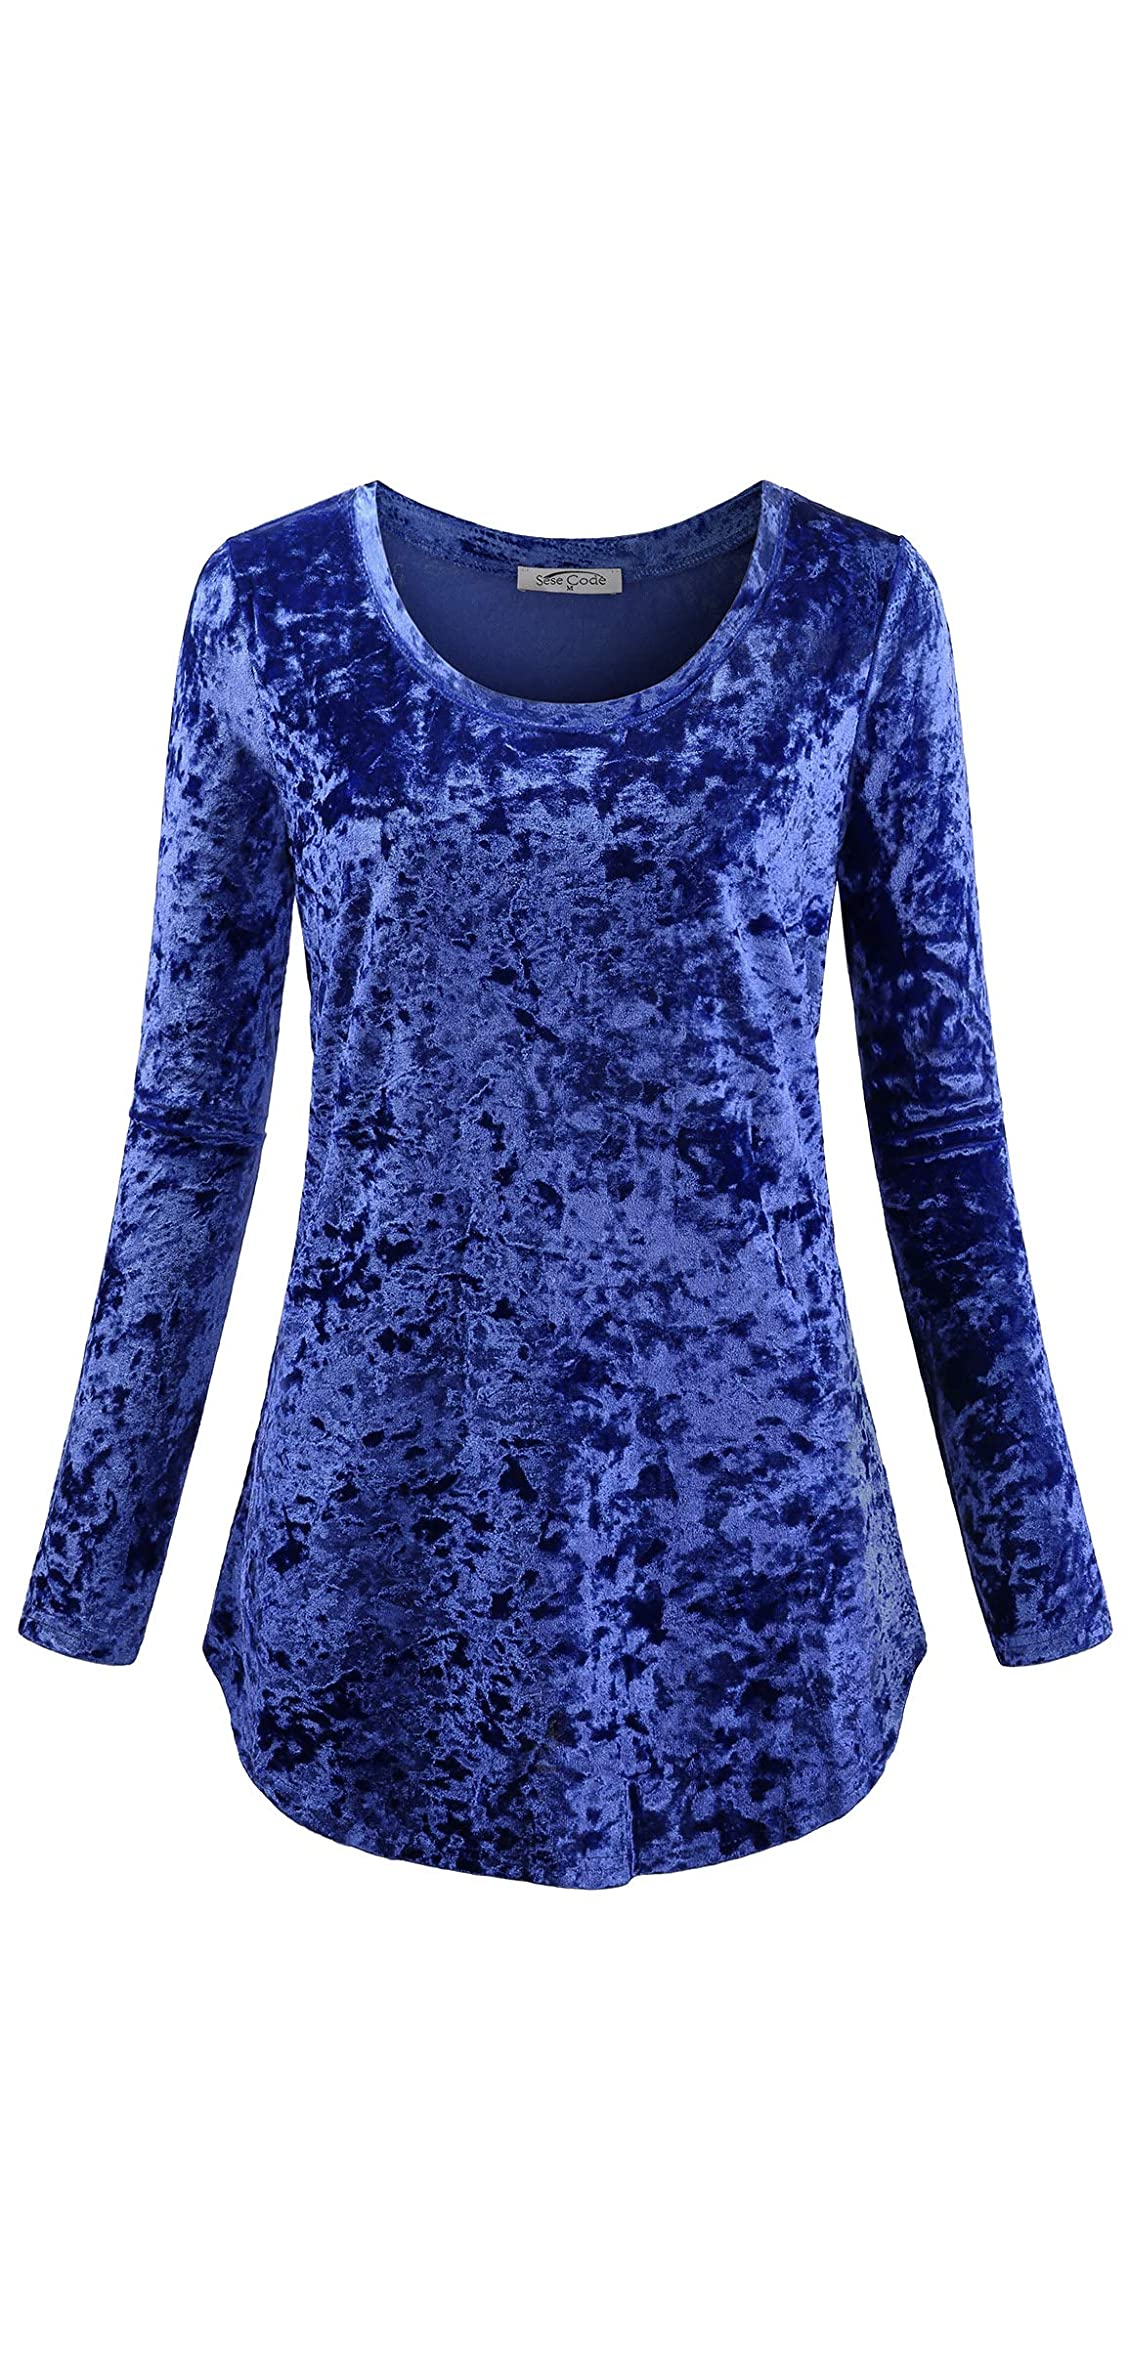 Women's Casual Long Sleeve Crew Neck Form Fitting